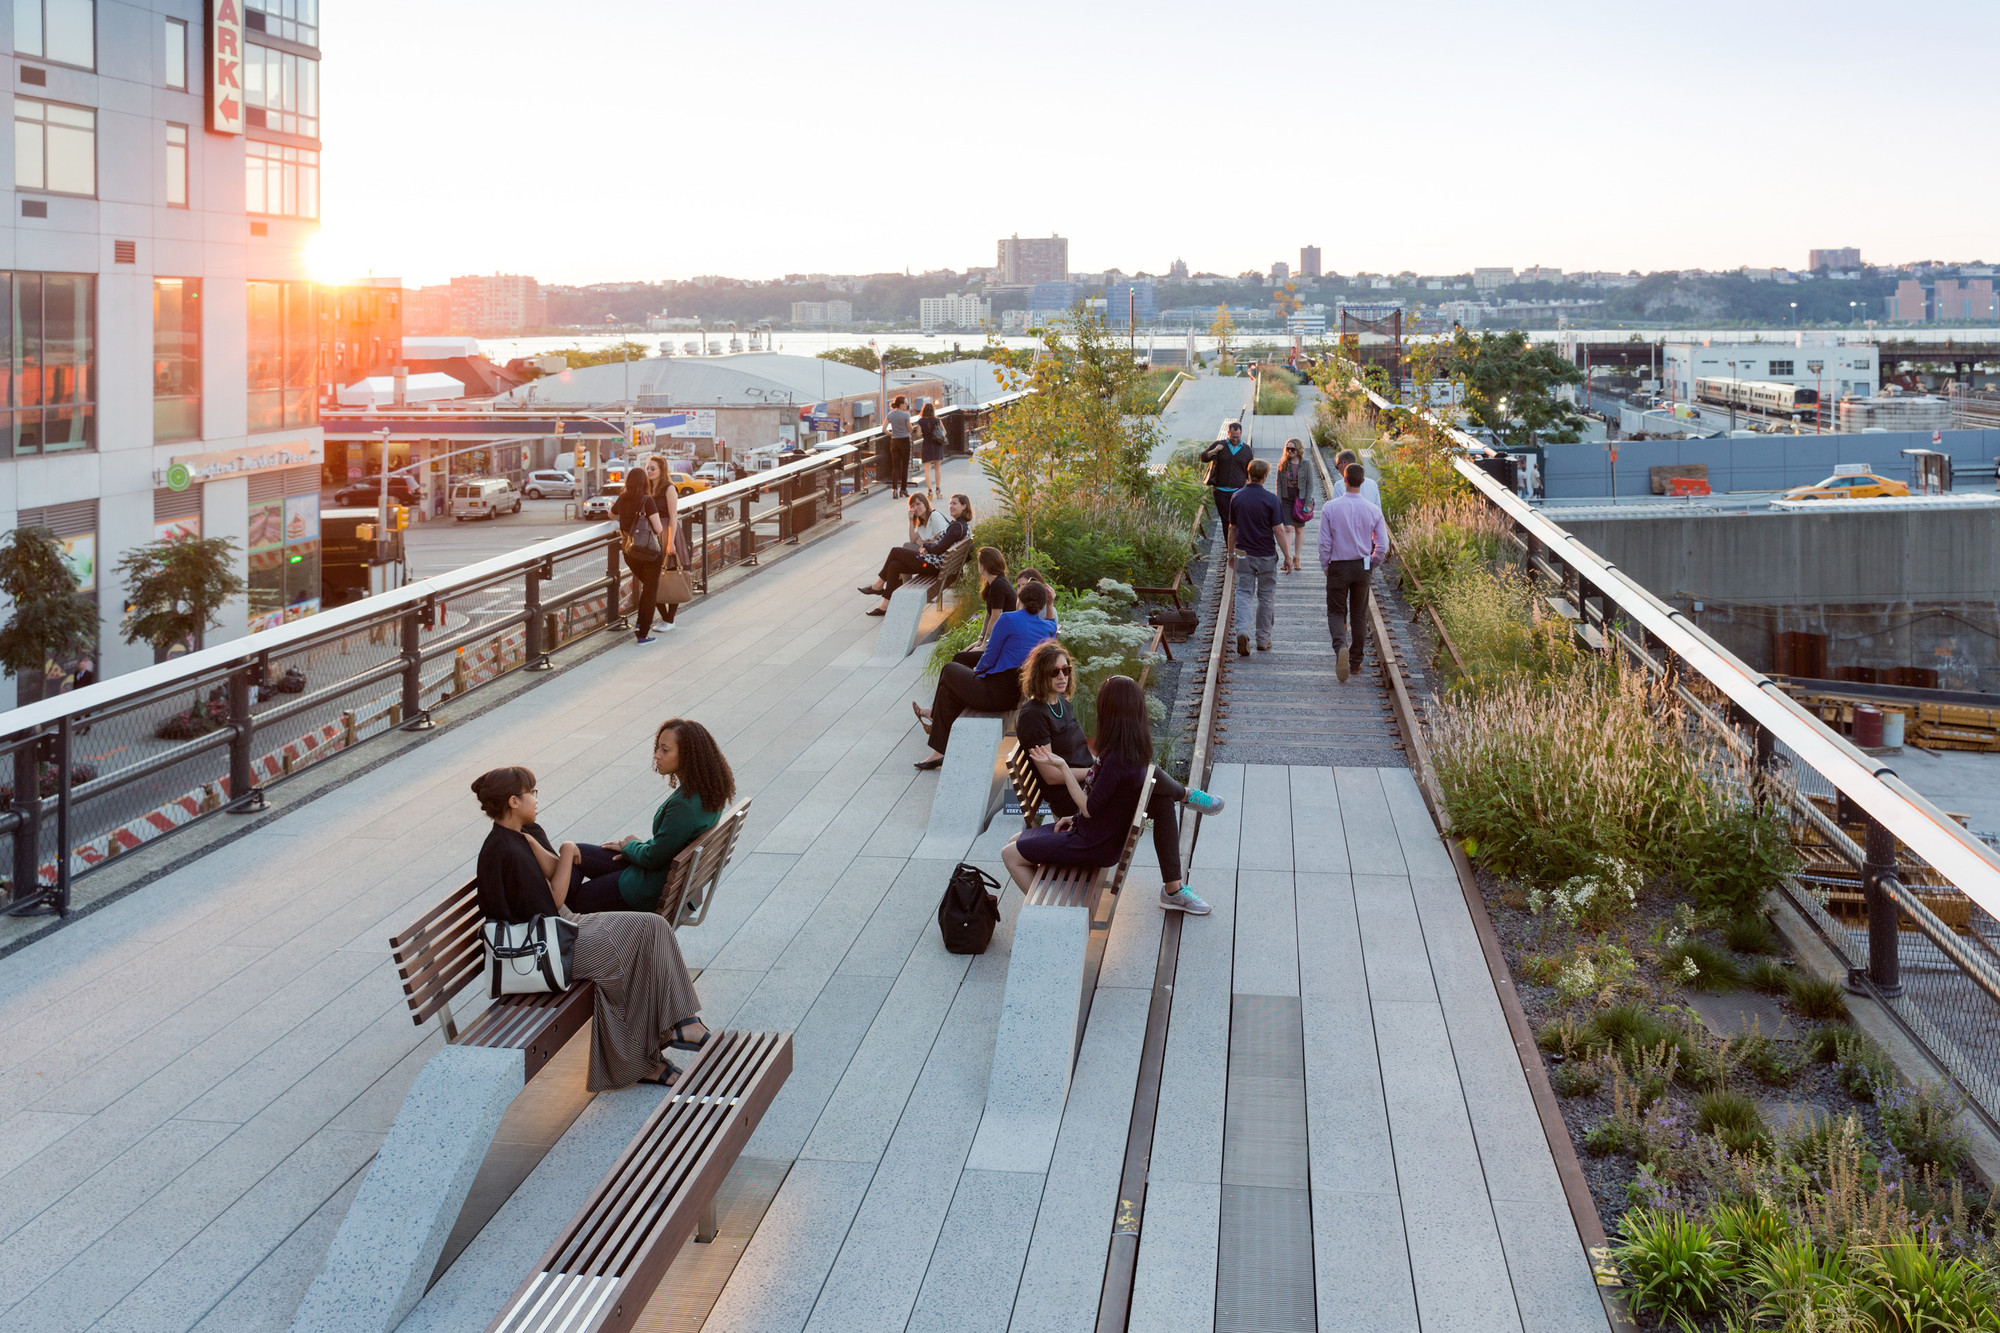 View looking west at sunset. Conversation benches and a Rail Track Walk are visible. Image © Iwan Baan, 2014 (Section 3)